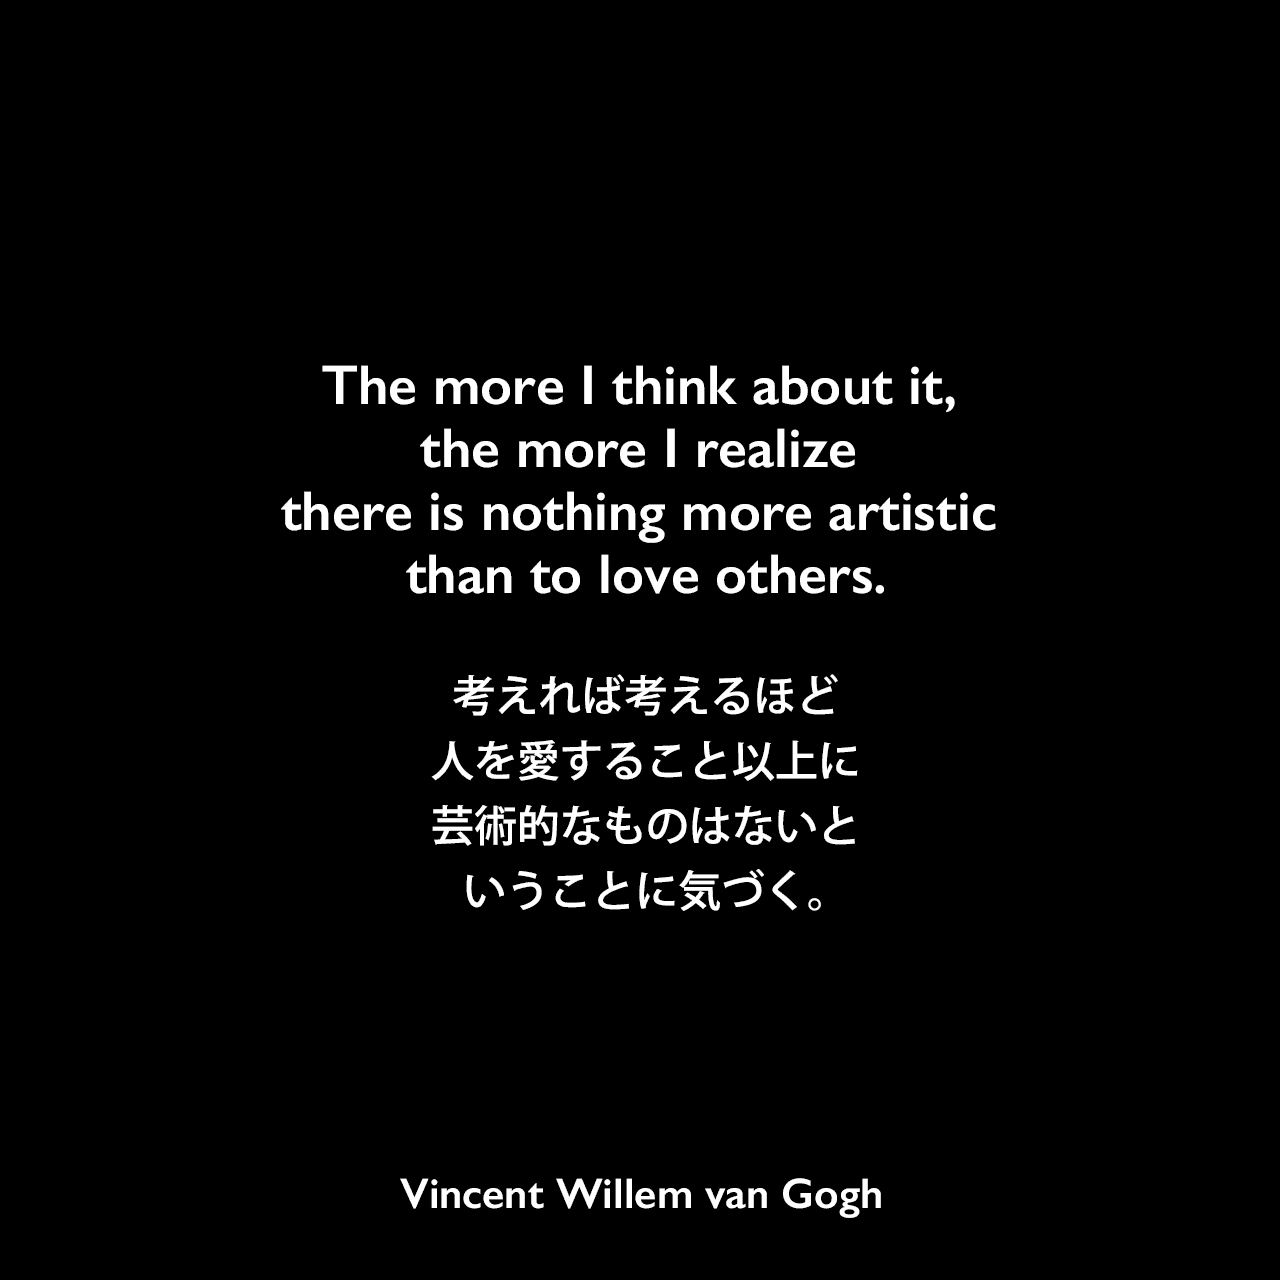 The more I think about it, the more I realize there is nothing more artistic than to love others.考えれば考えるほど、人を愛すること以上に芸術的なものはないということに気づく。- Mary Engelbreitの本「Mary Engelbreit's Words To Live By」より